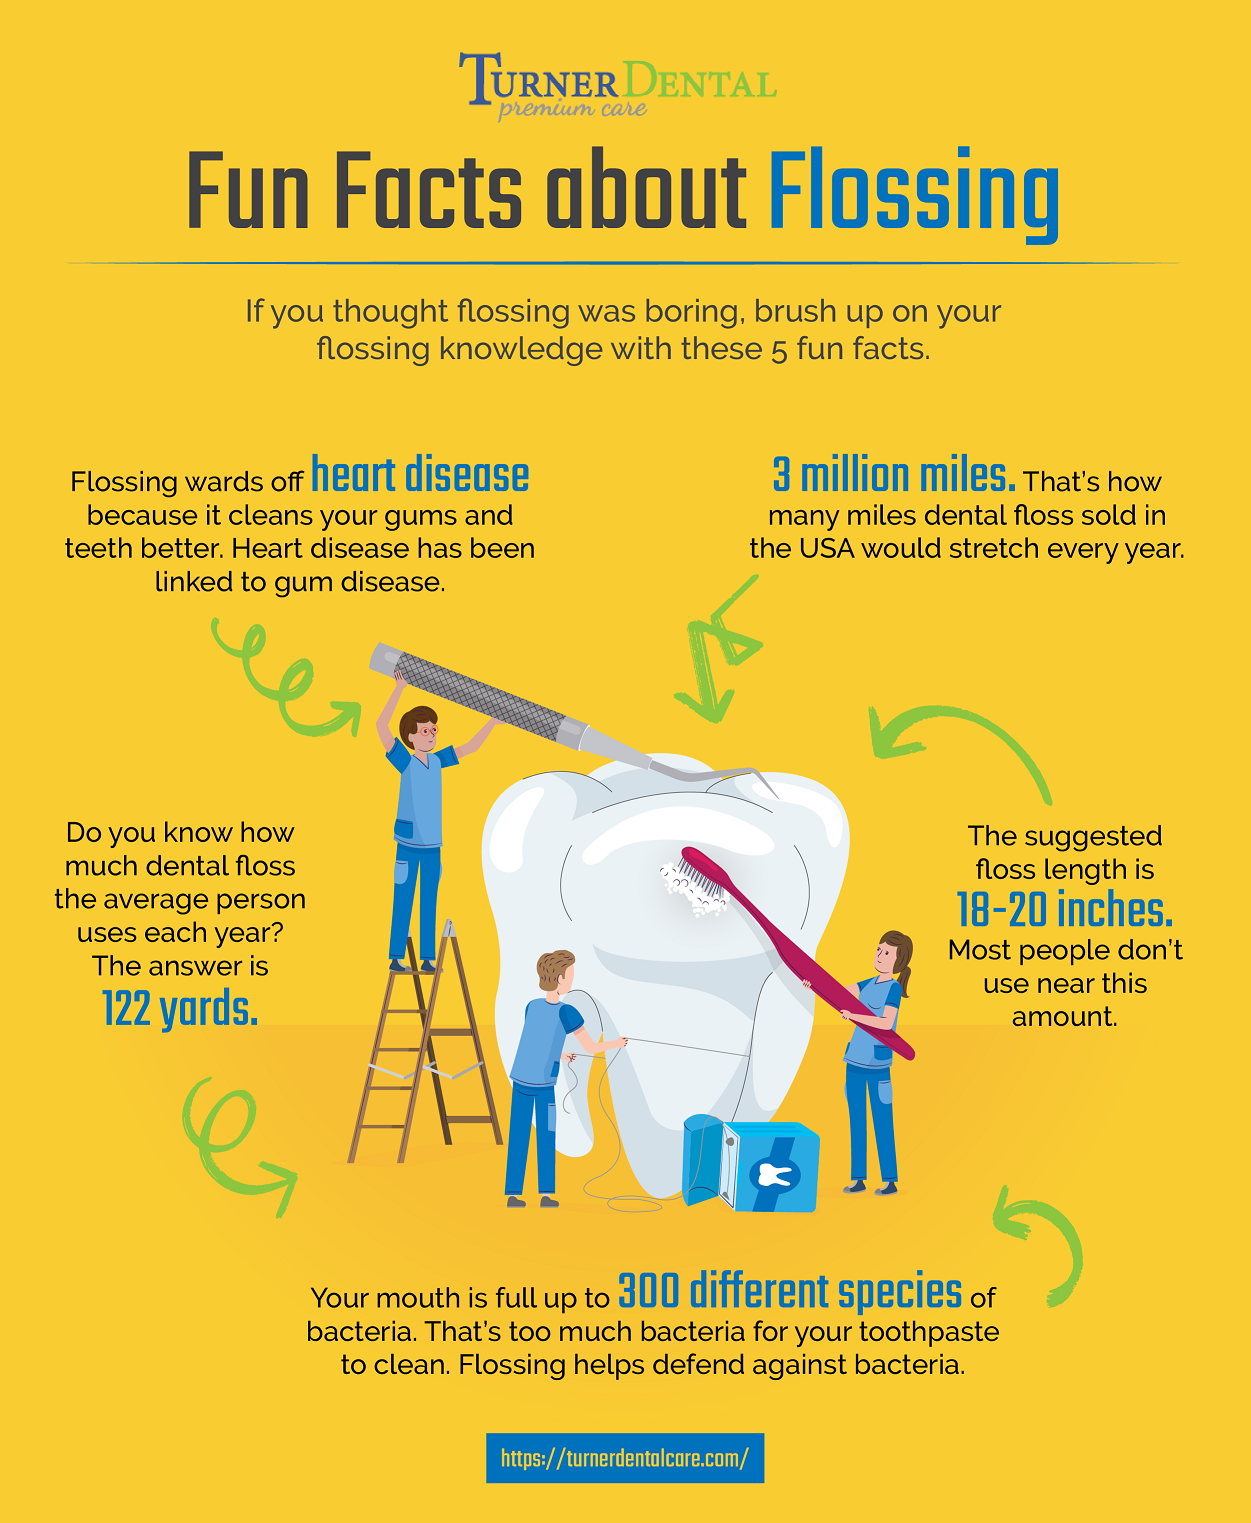 How Much Do You Know About Flossing?